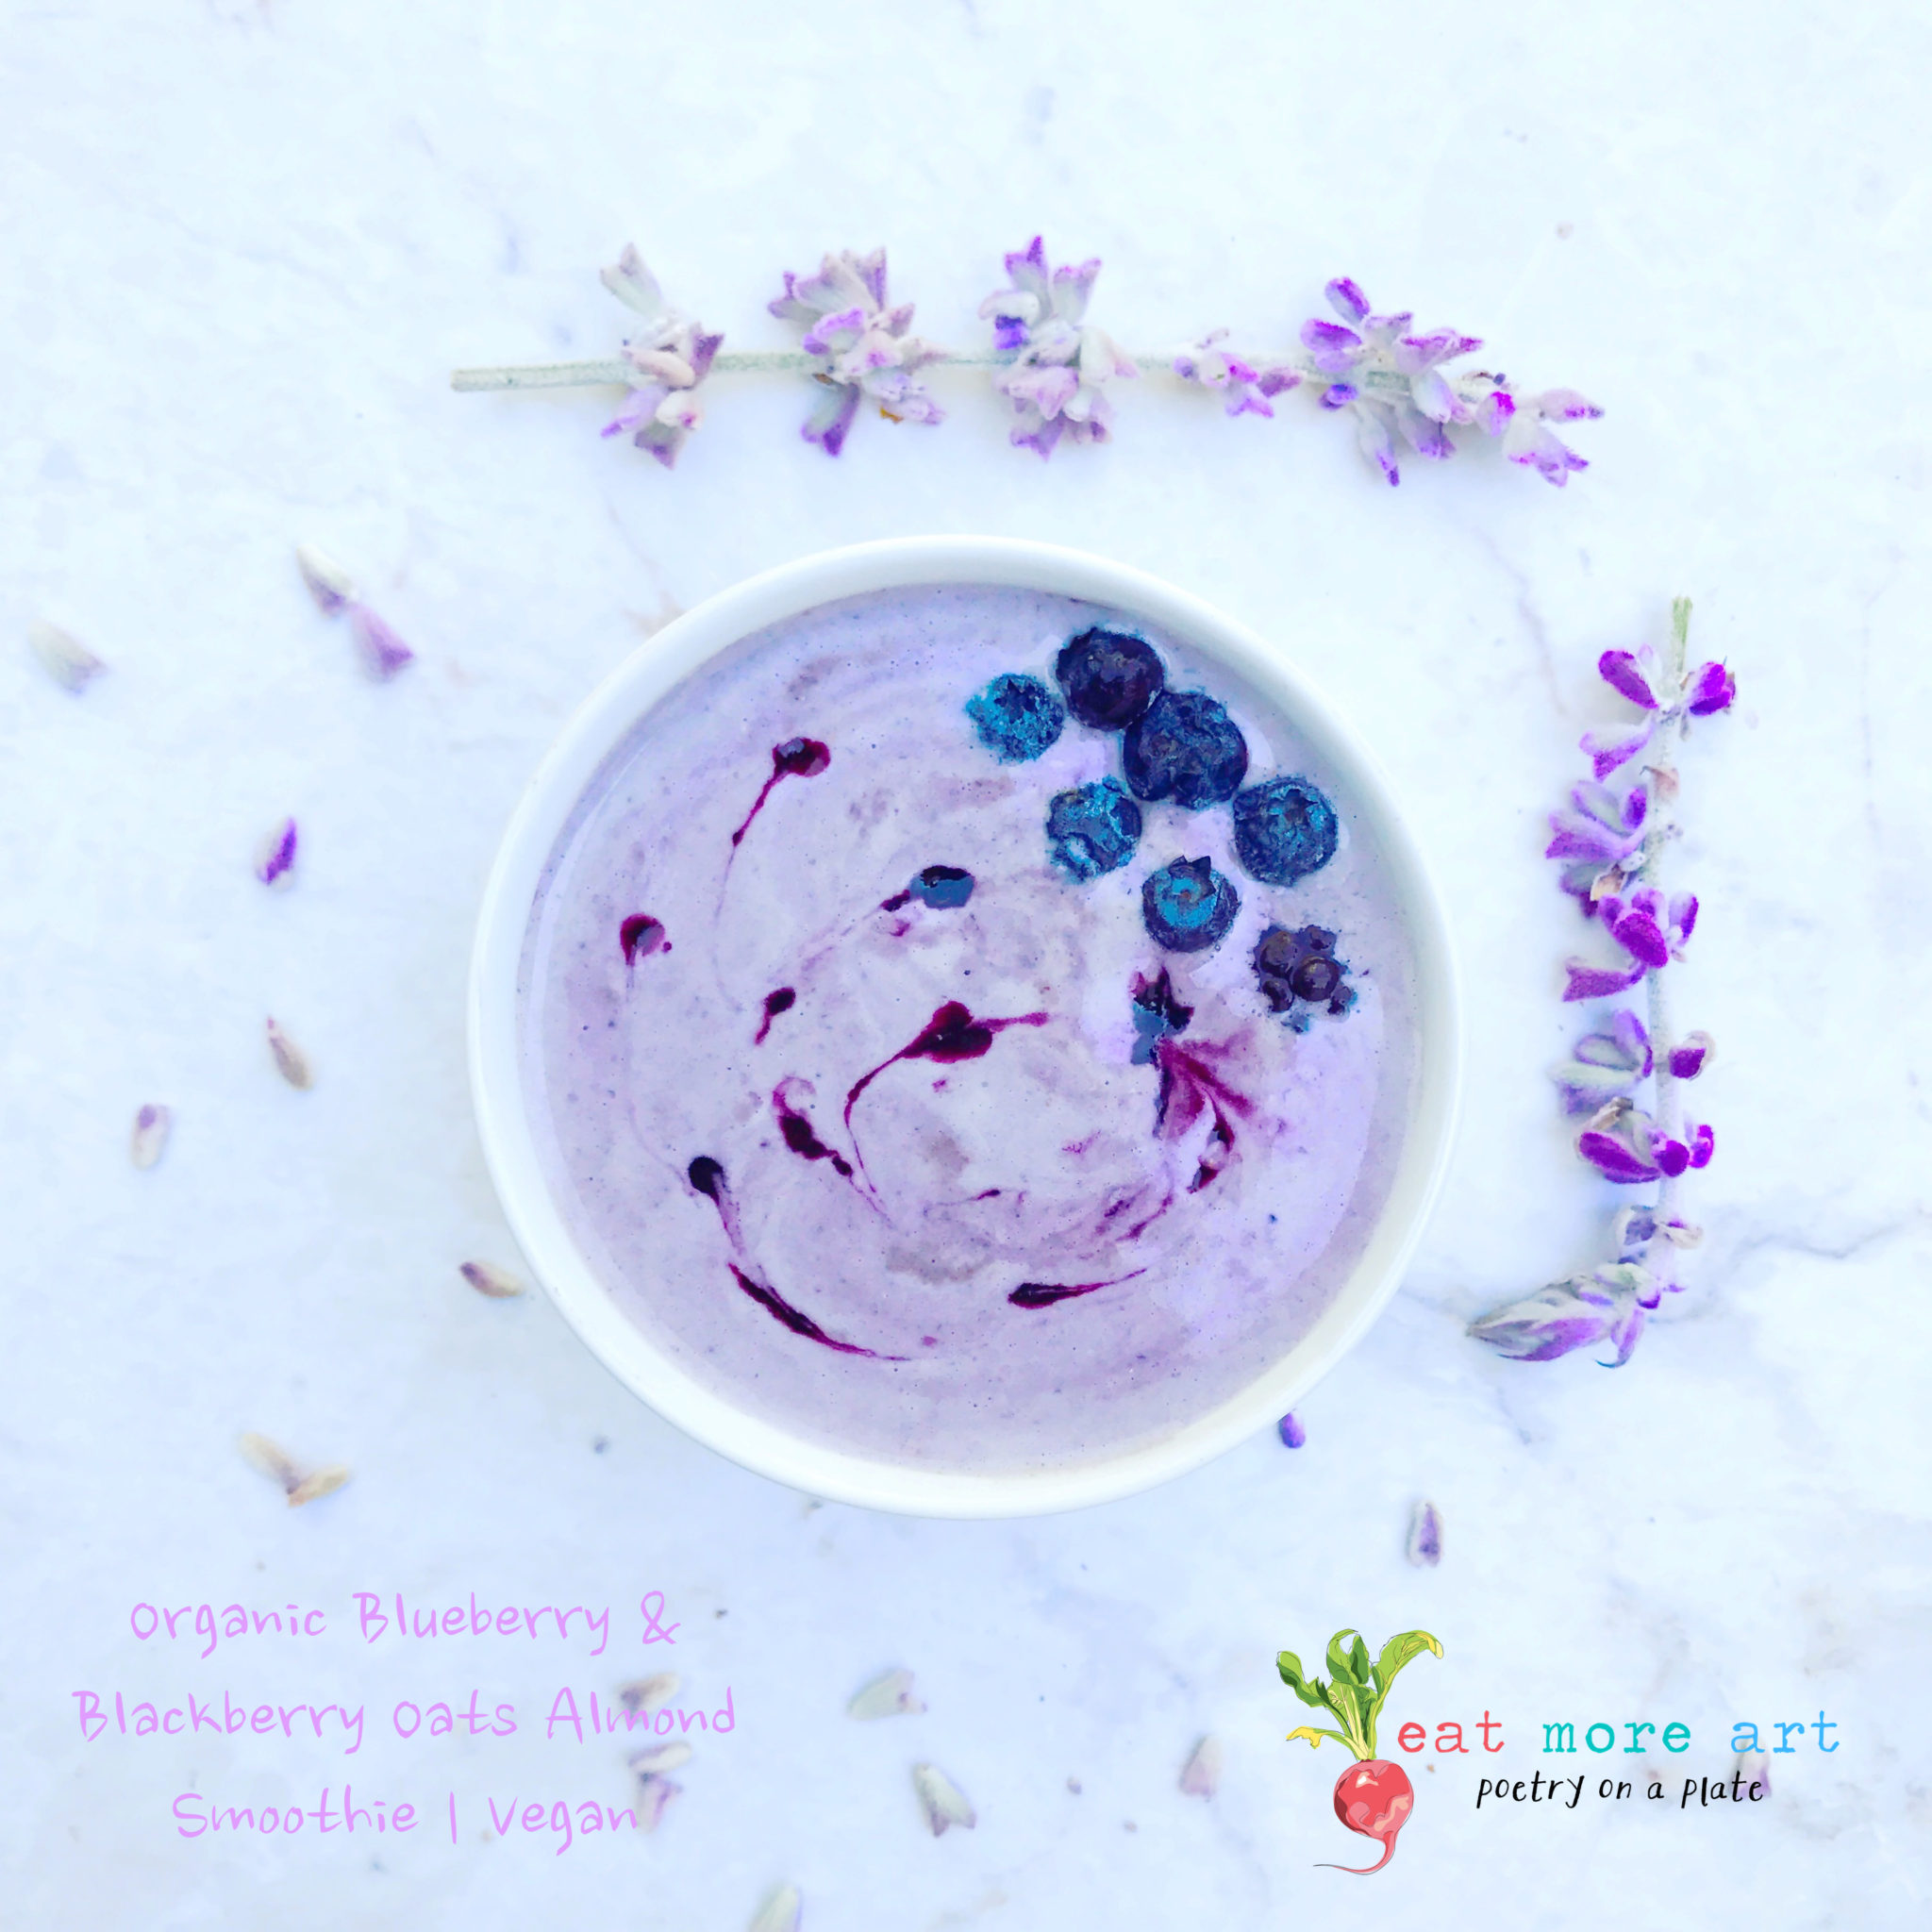 Organic Blueberry & Blackberry, Oats and Almond Smoothie | Vegan | Eat More Art